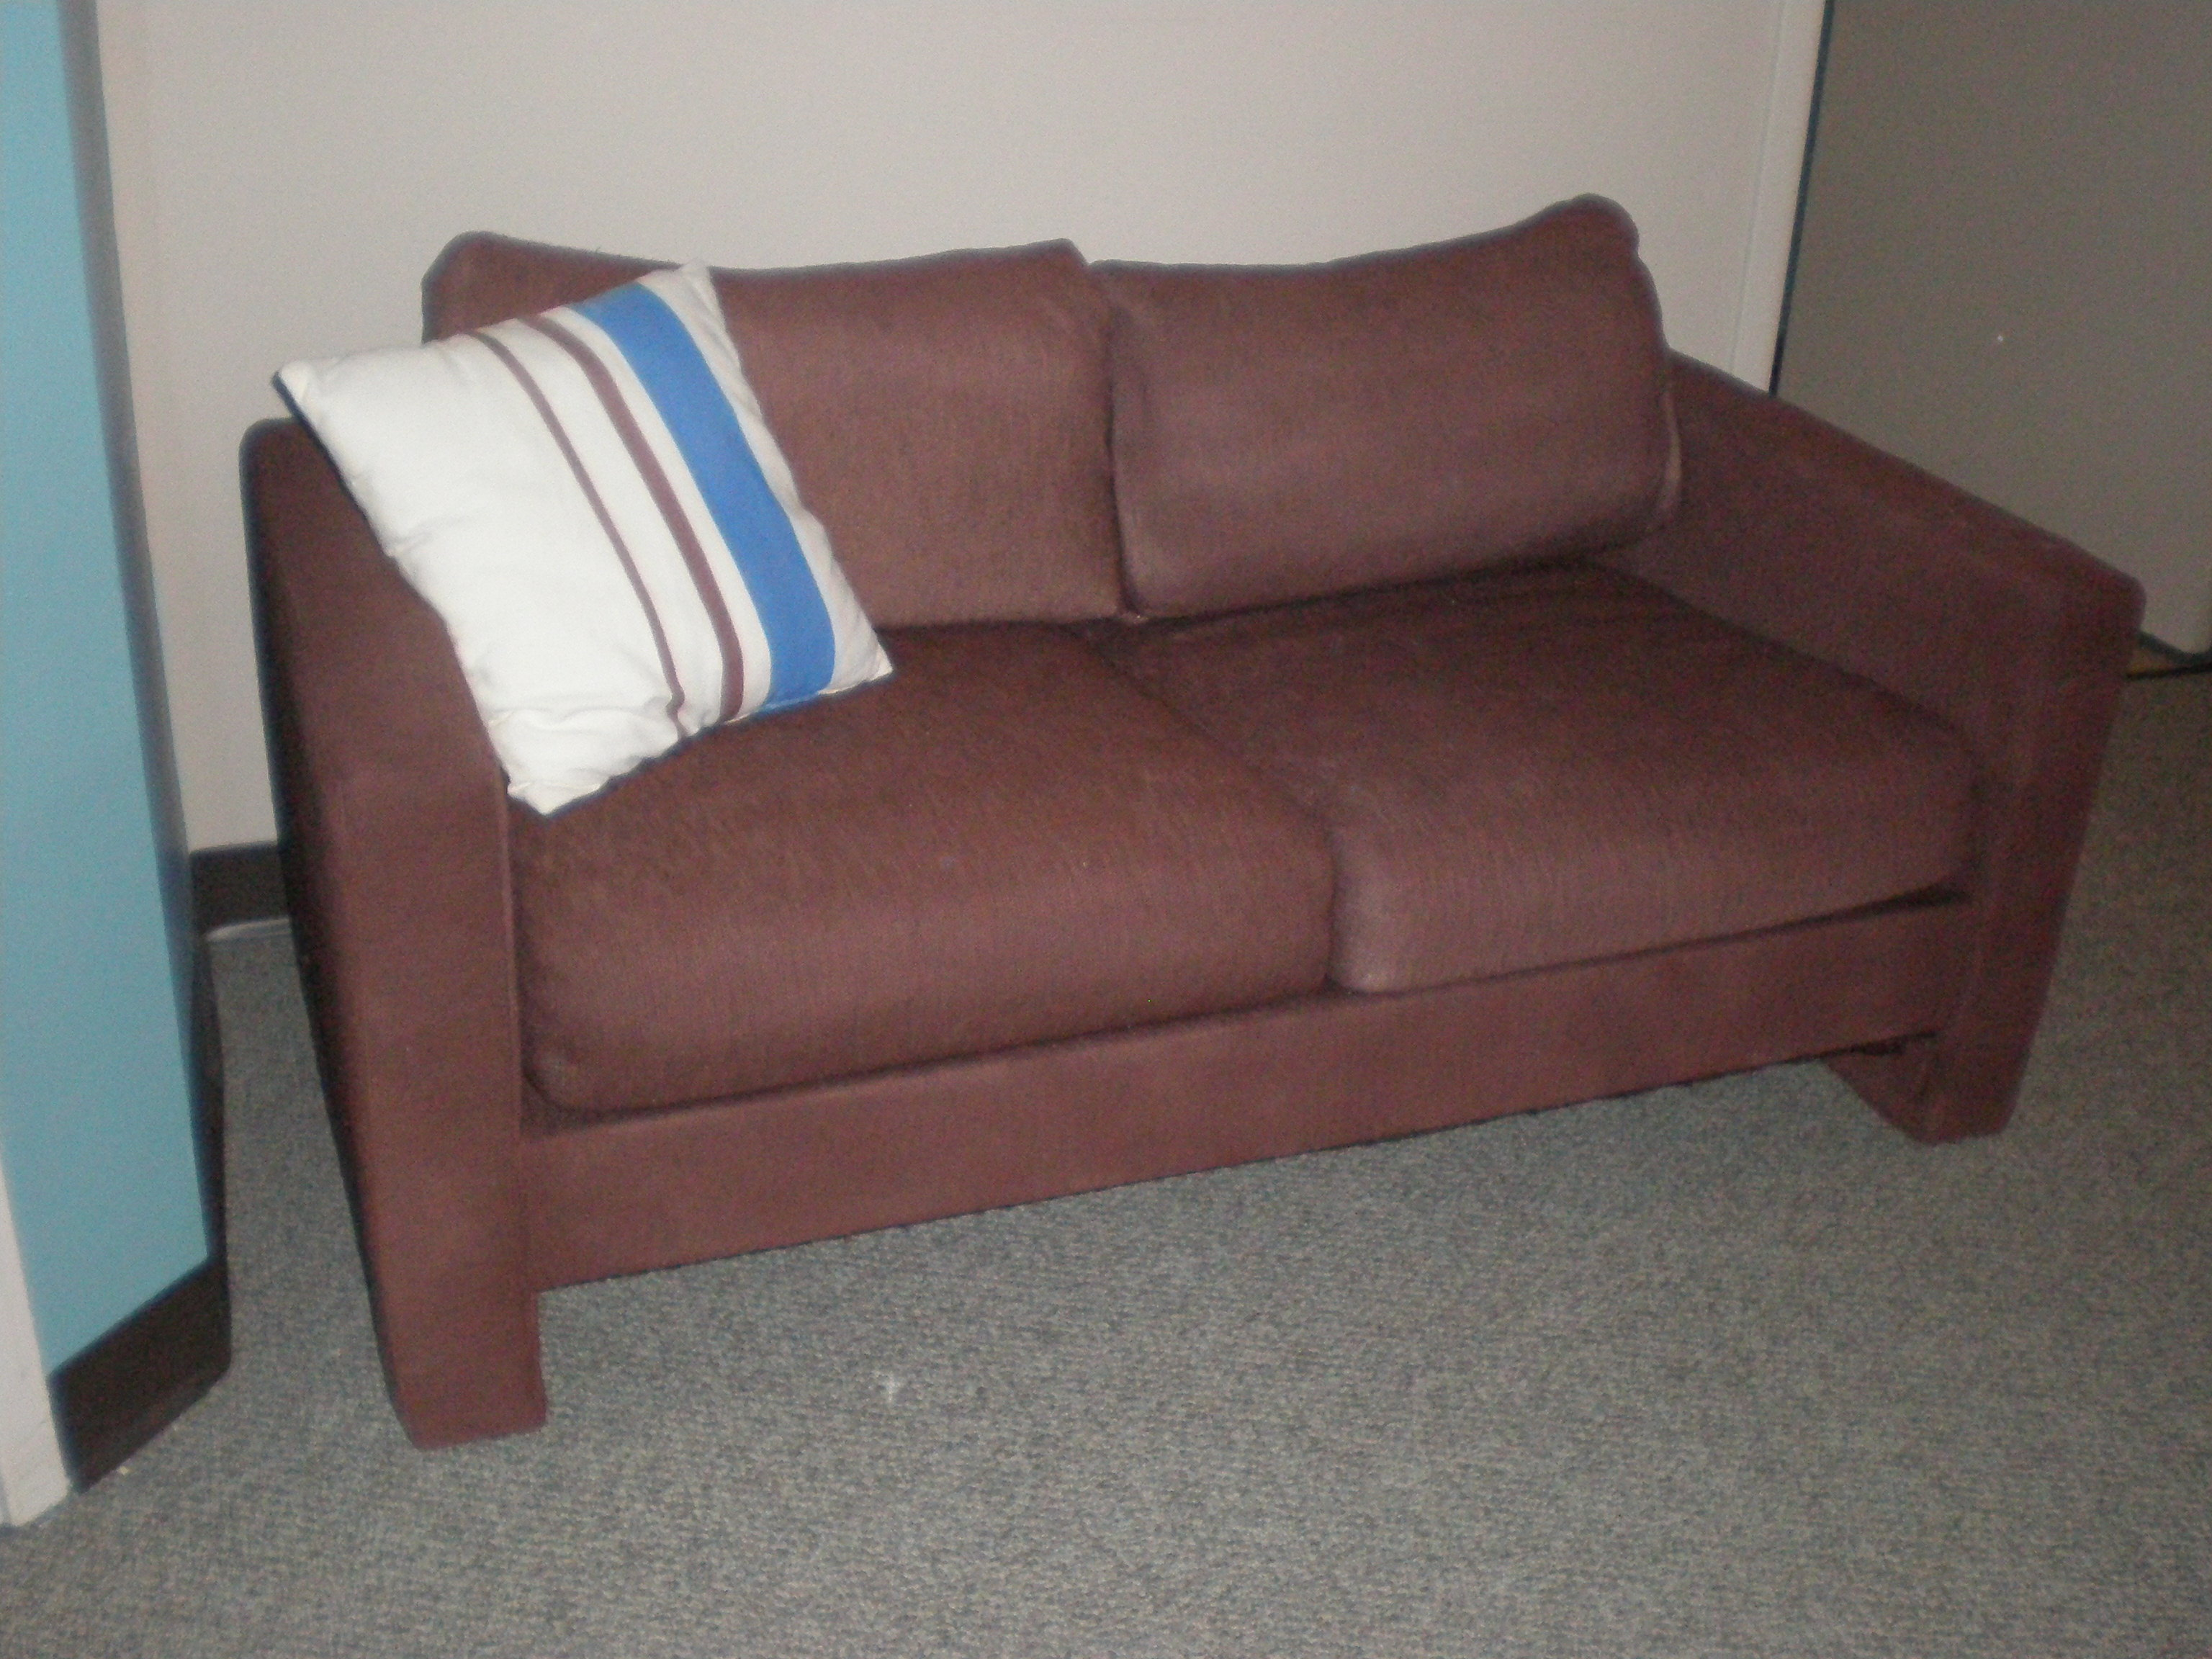 couch2-after.jpg